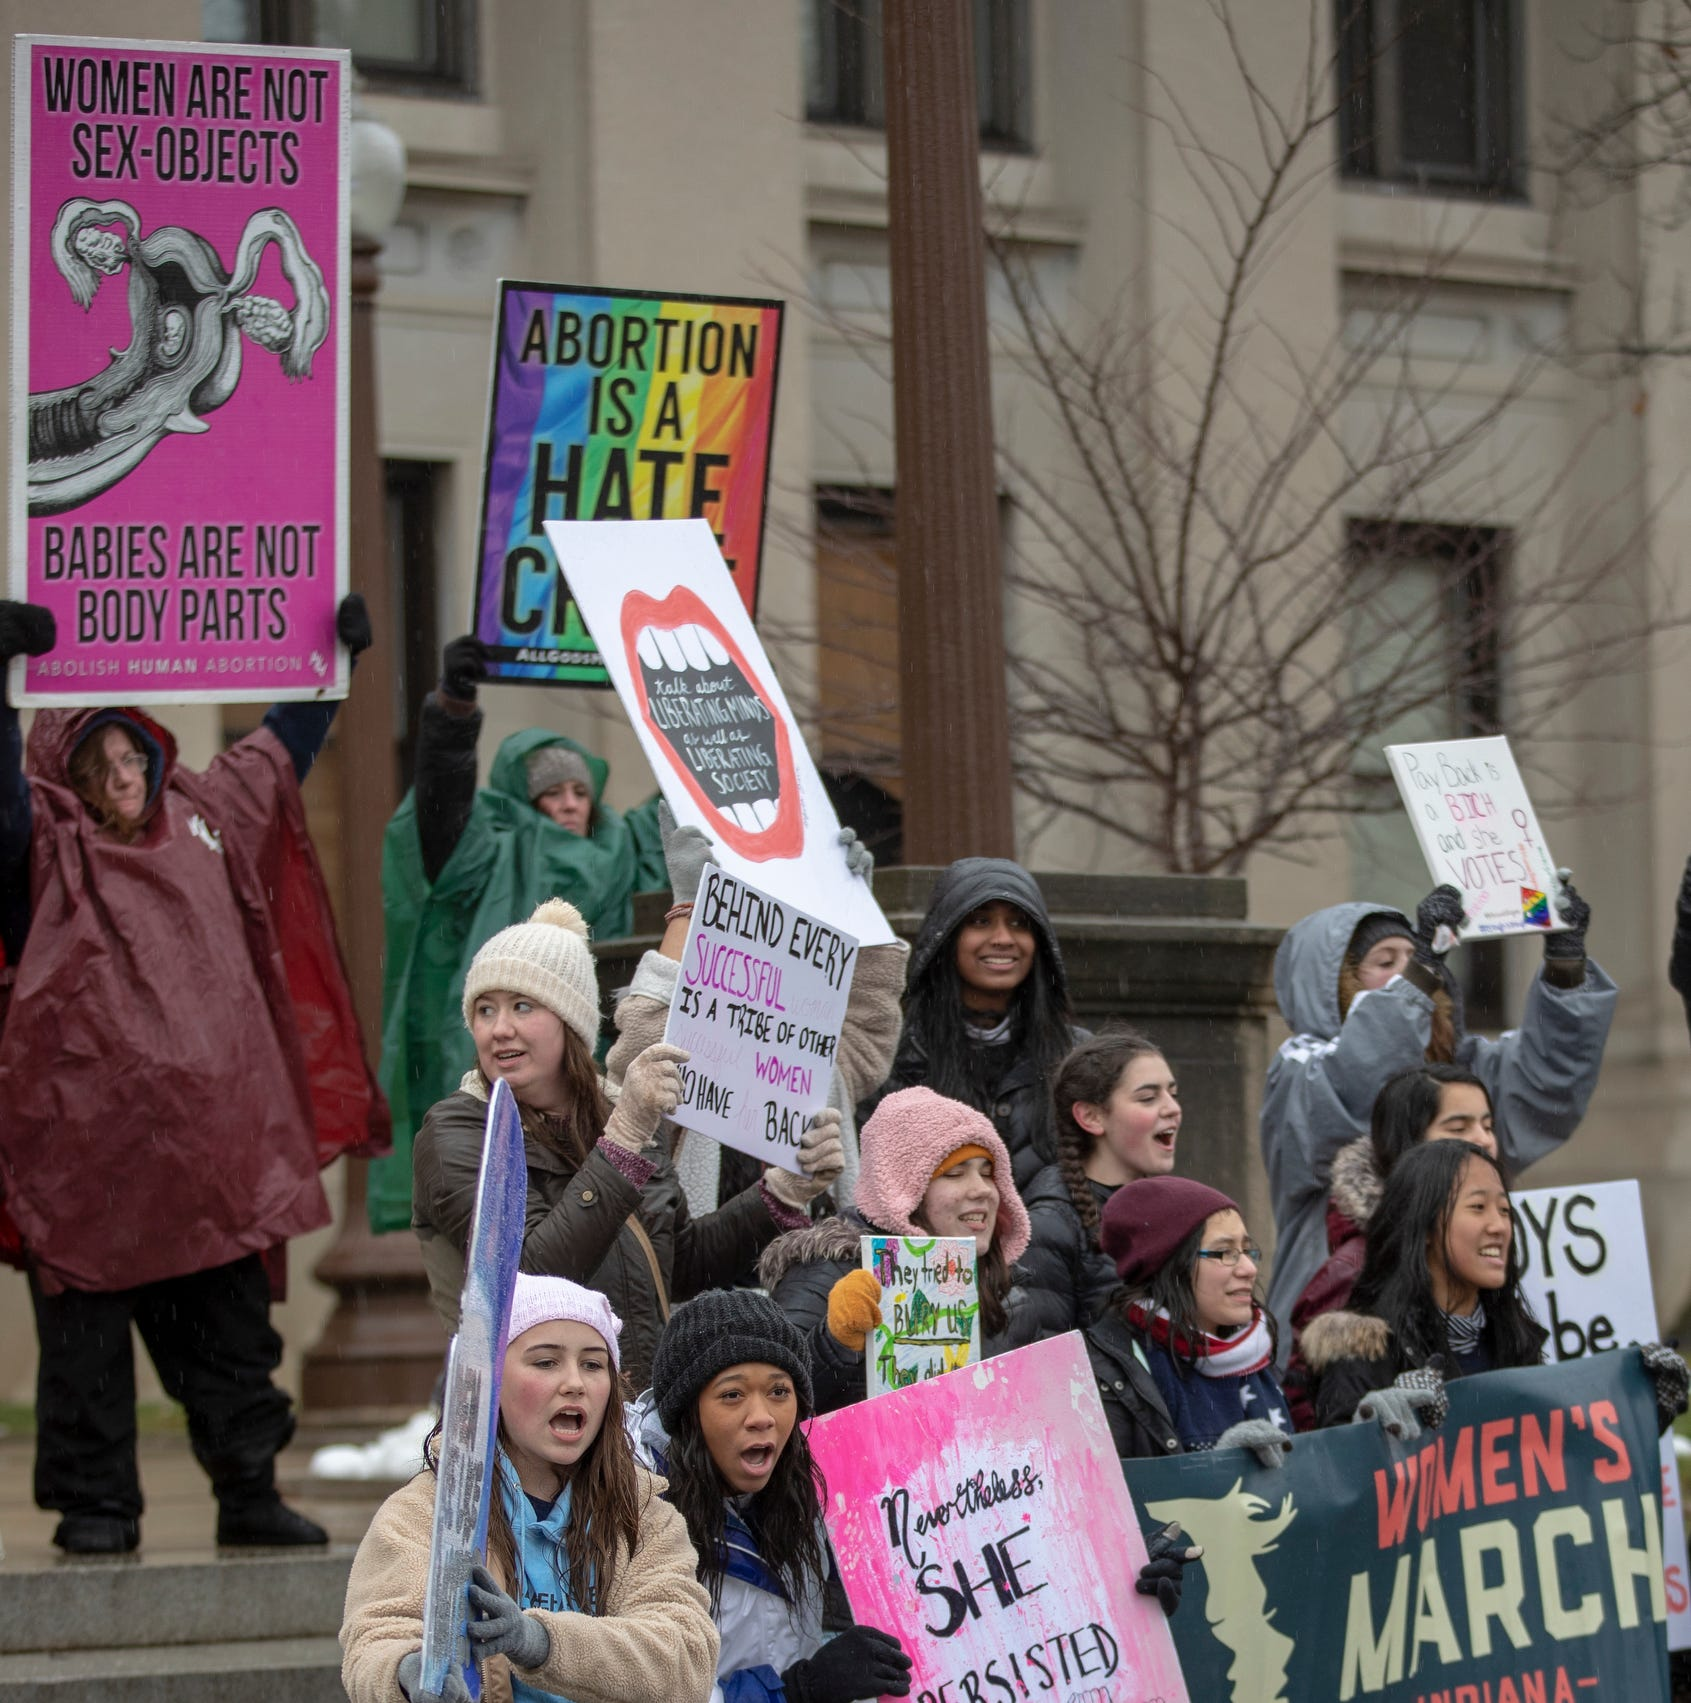 A group of anti abortion protesters are blocked by participants in the day's Women's March, Indianapolis, Saturday, Jan. 19, 2019.